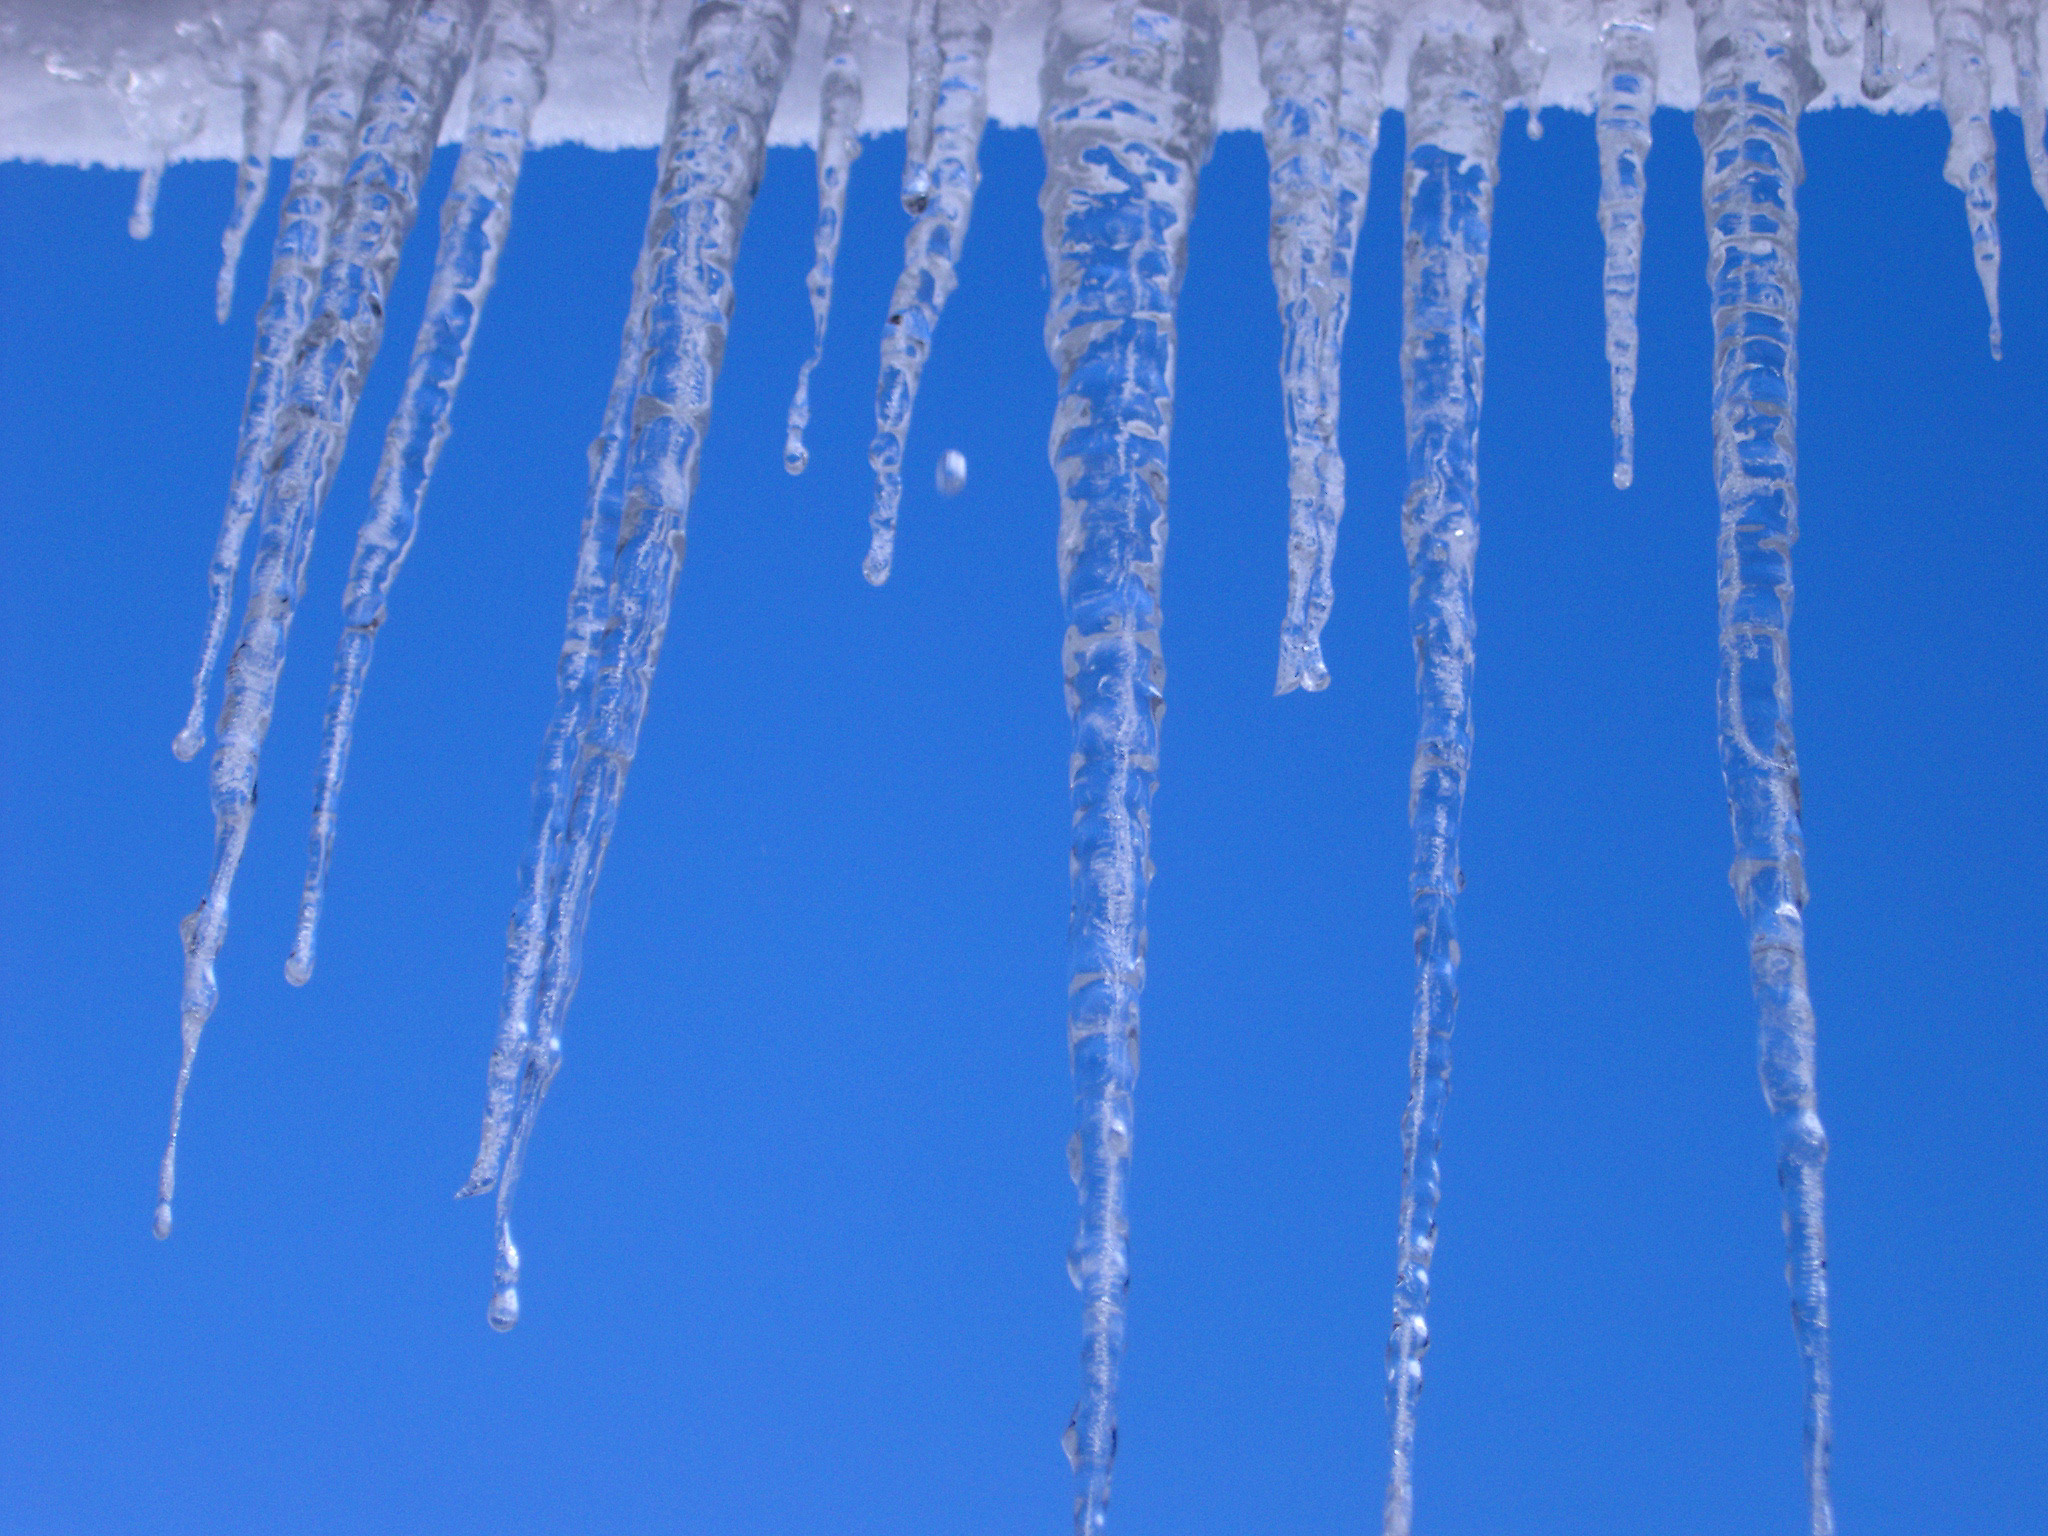 Row of long icicles hanging from the edge of a snow covered roof against a clear crisp sunny blue winter sky